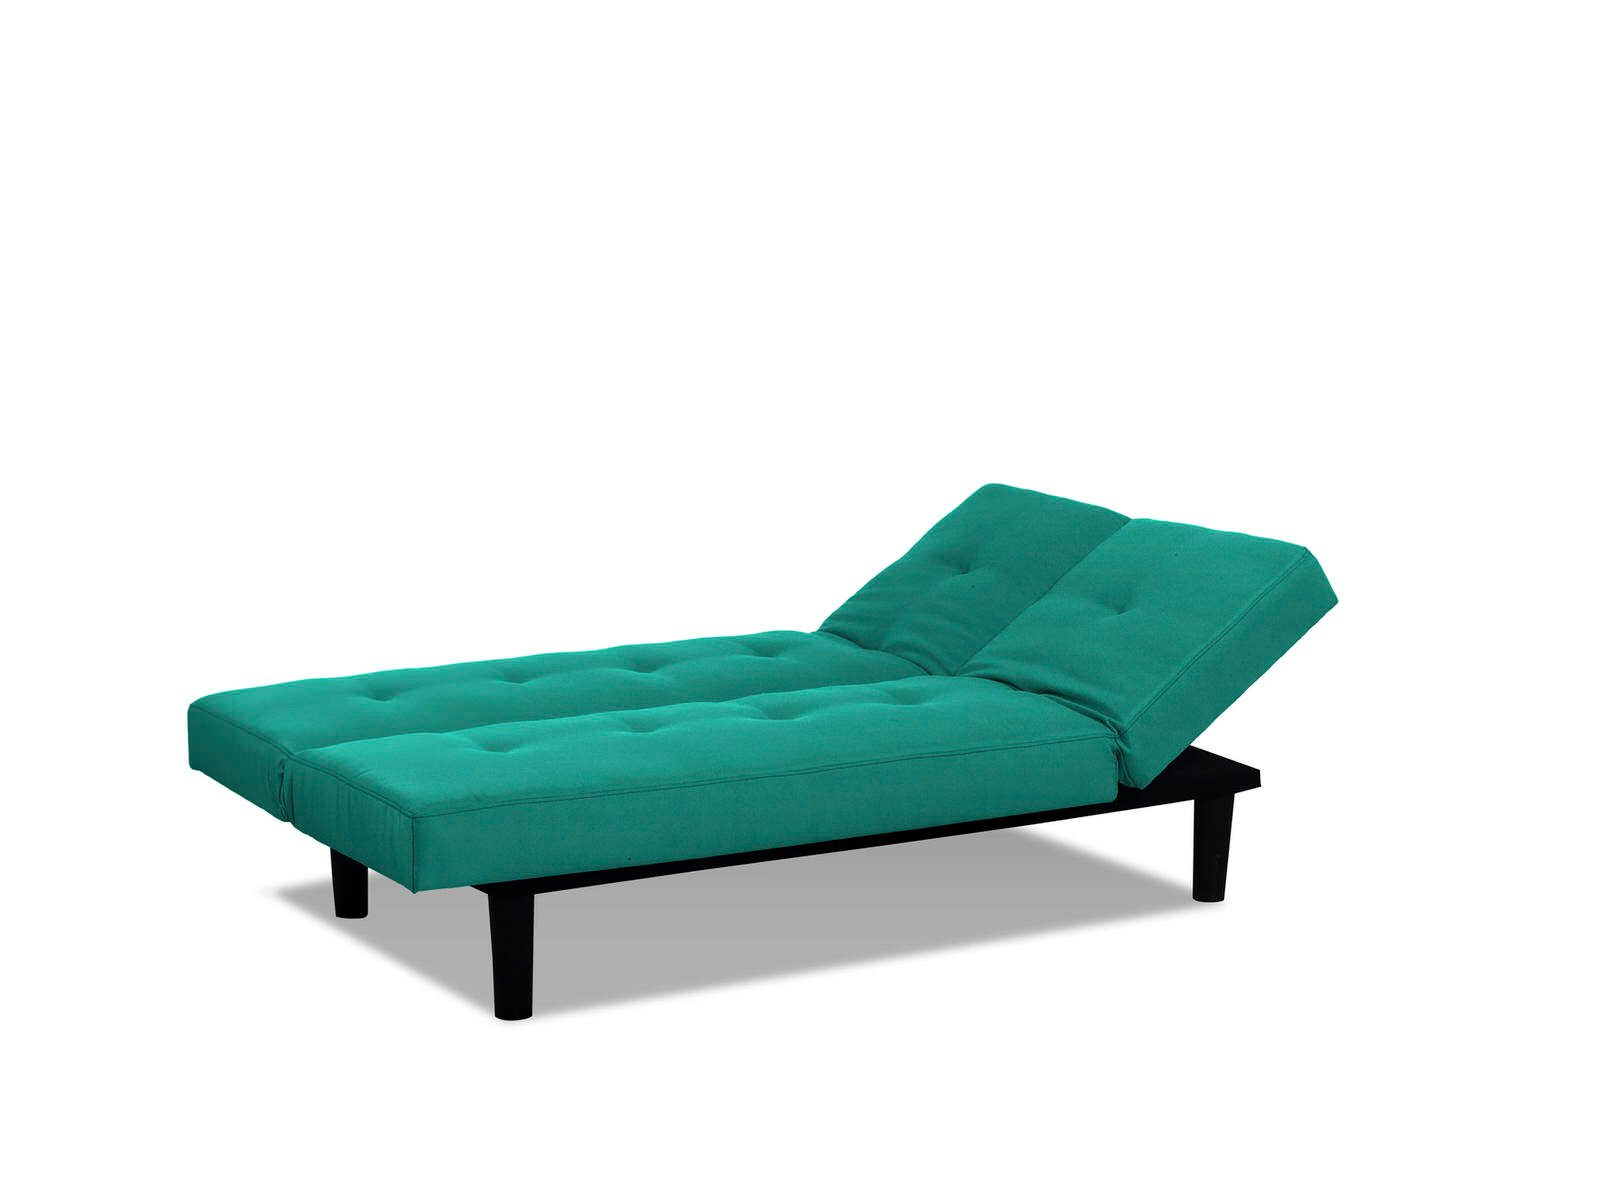 Outstanding Mini Lounger Convertible Sofa Bed Teal By Serta Lifestyle Alphanode Cool Chair Designs And Ideas Alphanodeonline